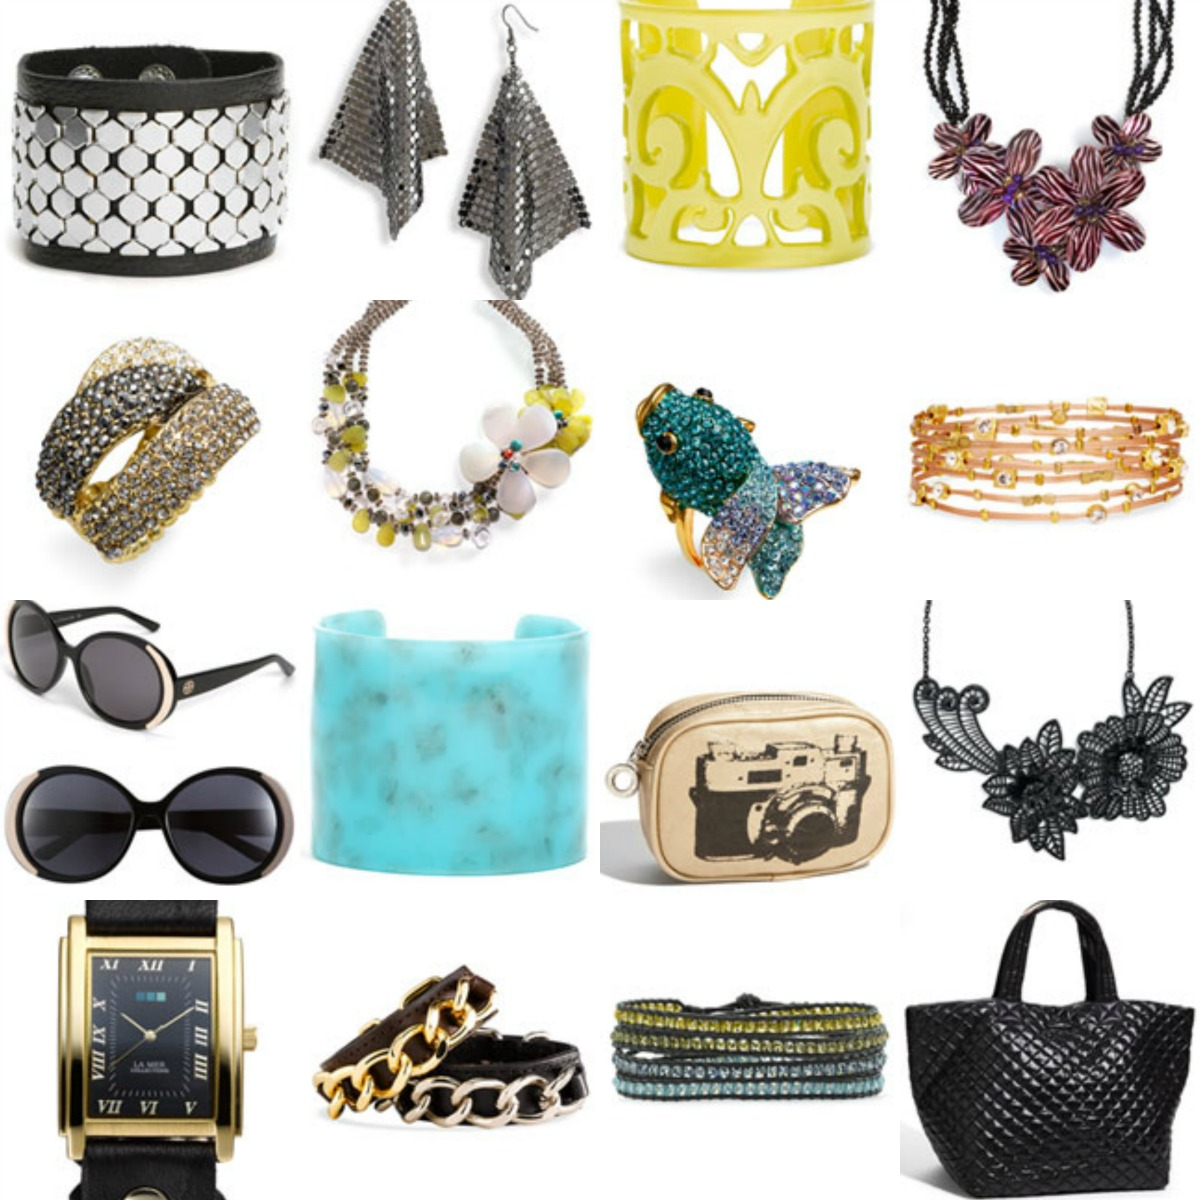 Here Is A List Of 10 Chic Accessories That You Can Use To Pep Up Your Look  Effortlessly - Tasteful Space